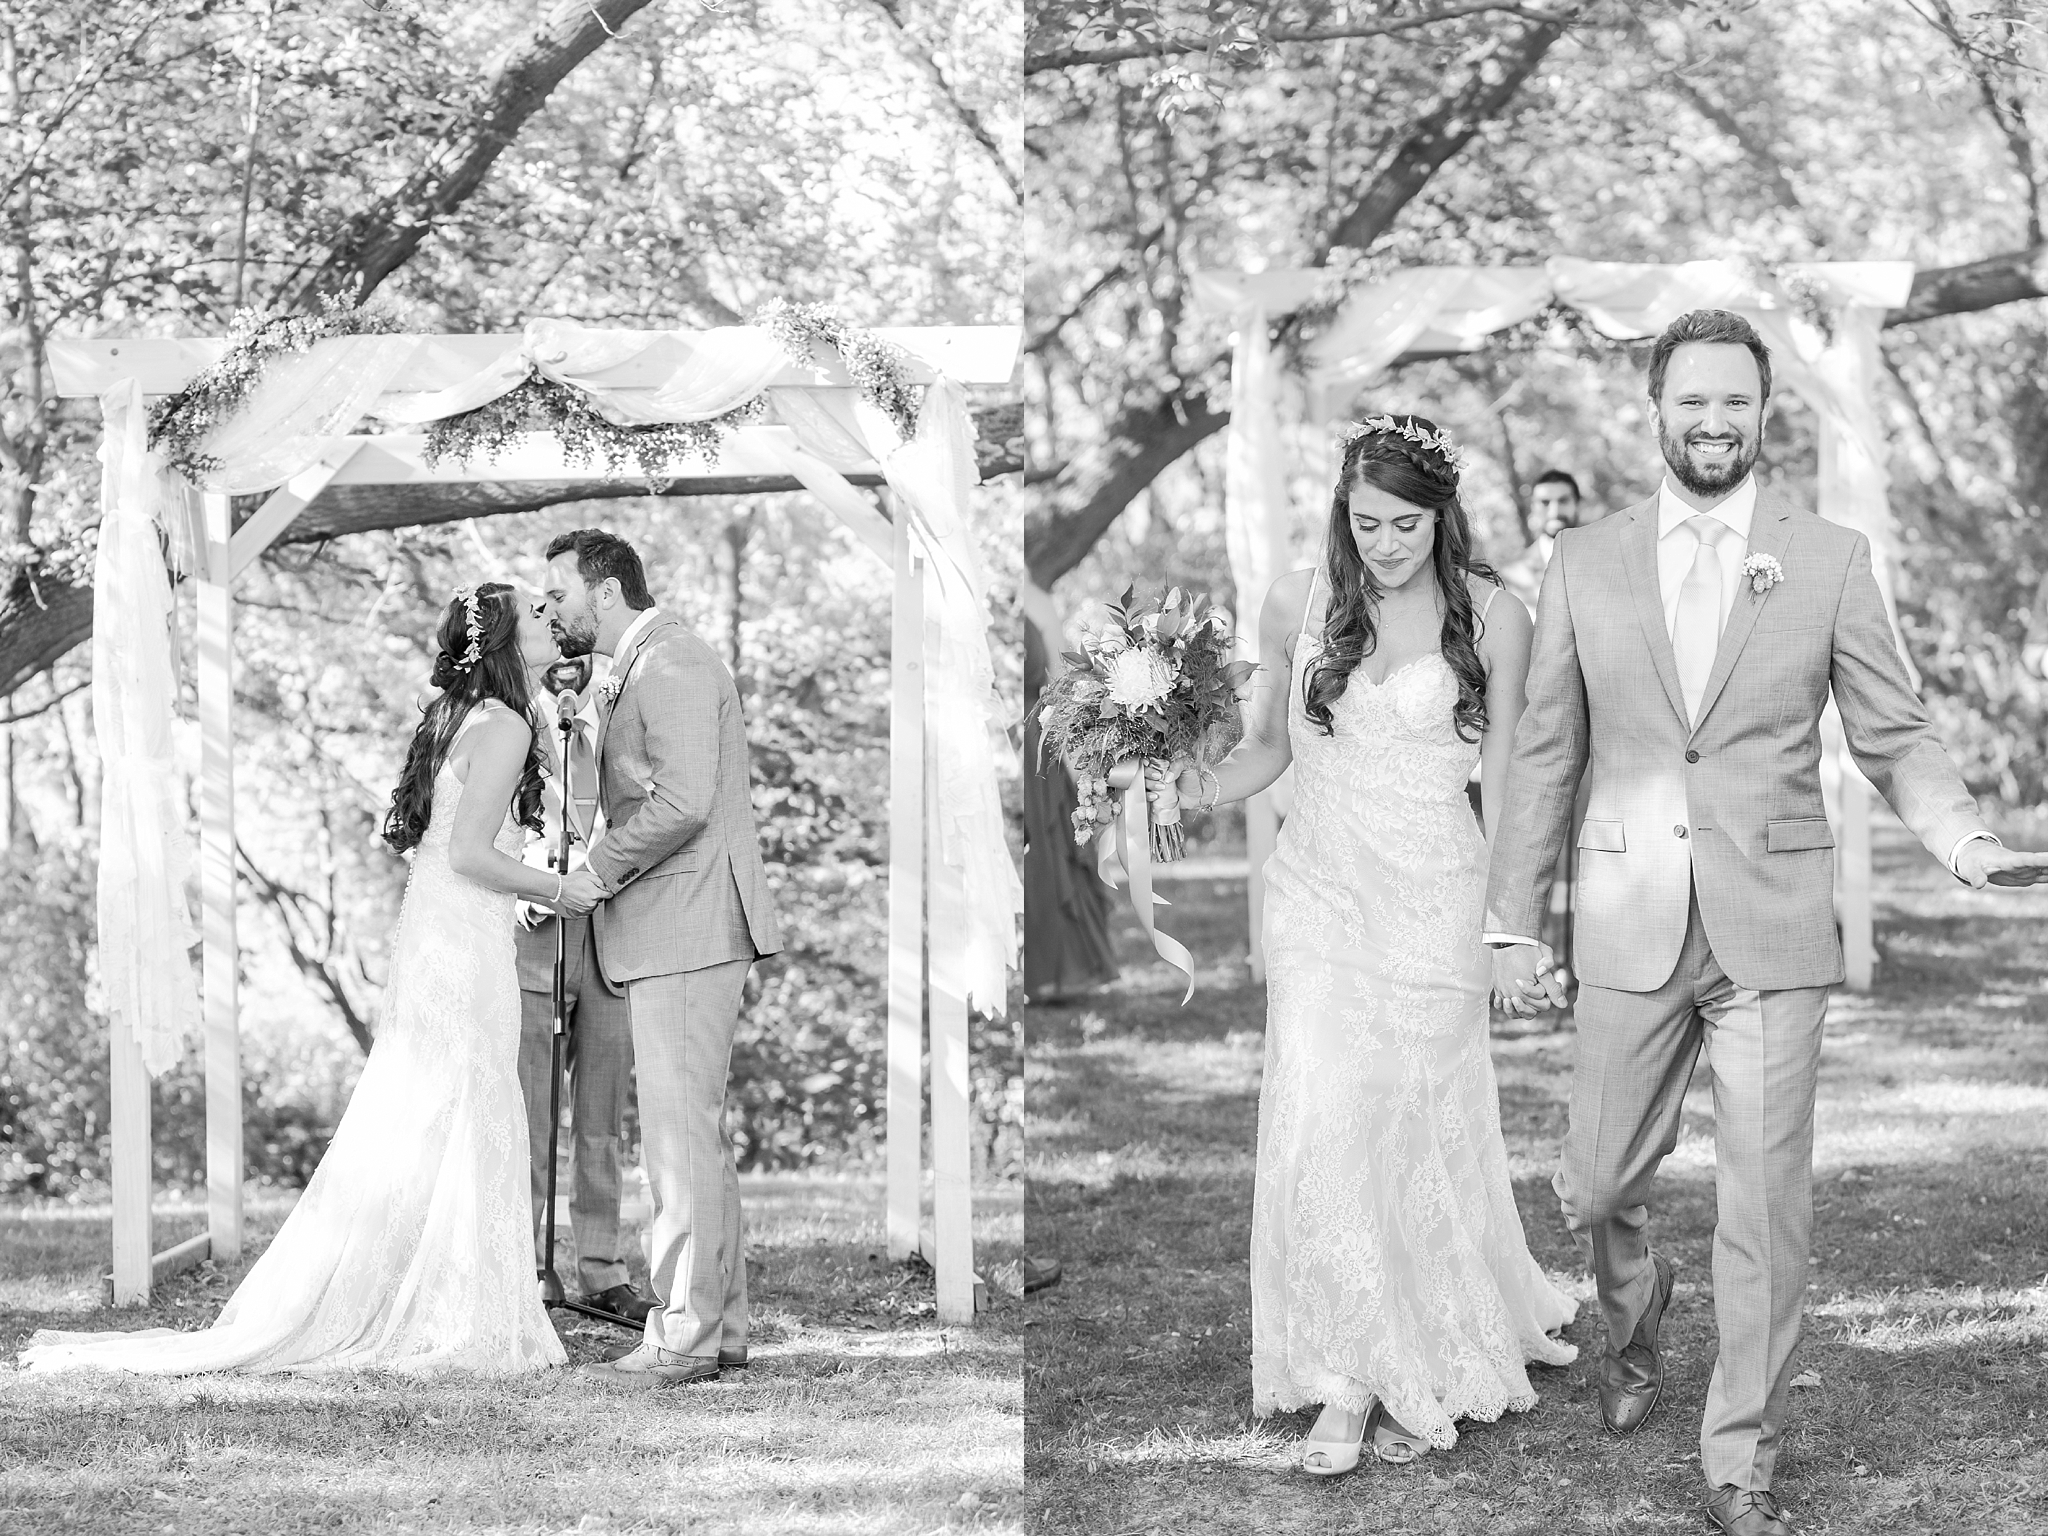 natural-rustic-wedding-photos-at-frutig-farms-the-valley-in-ann-arbor-michigan-by-courtney-carolyn-photography_0072.jpg